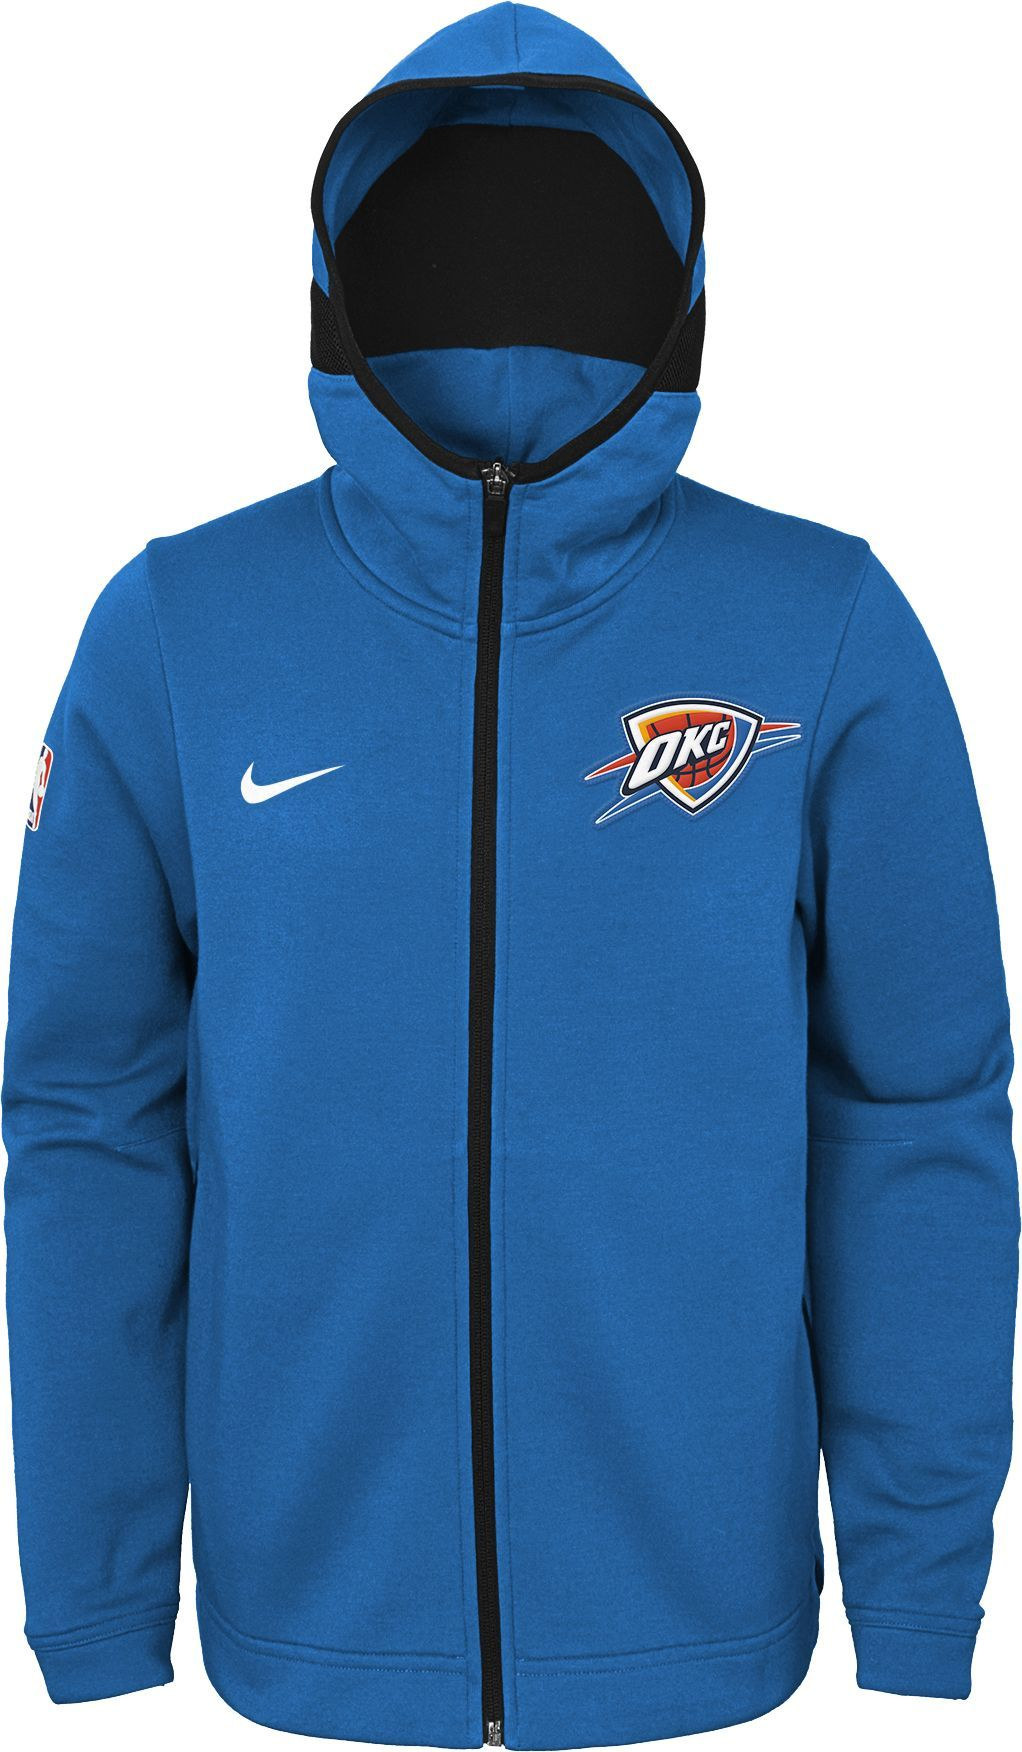 sale retailer c7ae7 5a213 Nike Youth Oklahoma City Thunder On-Court Blue Dri-FIT ...